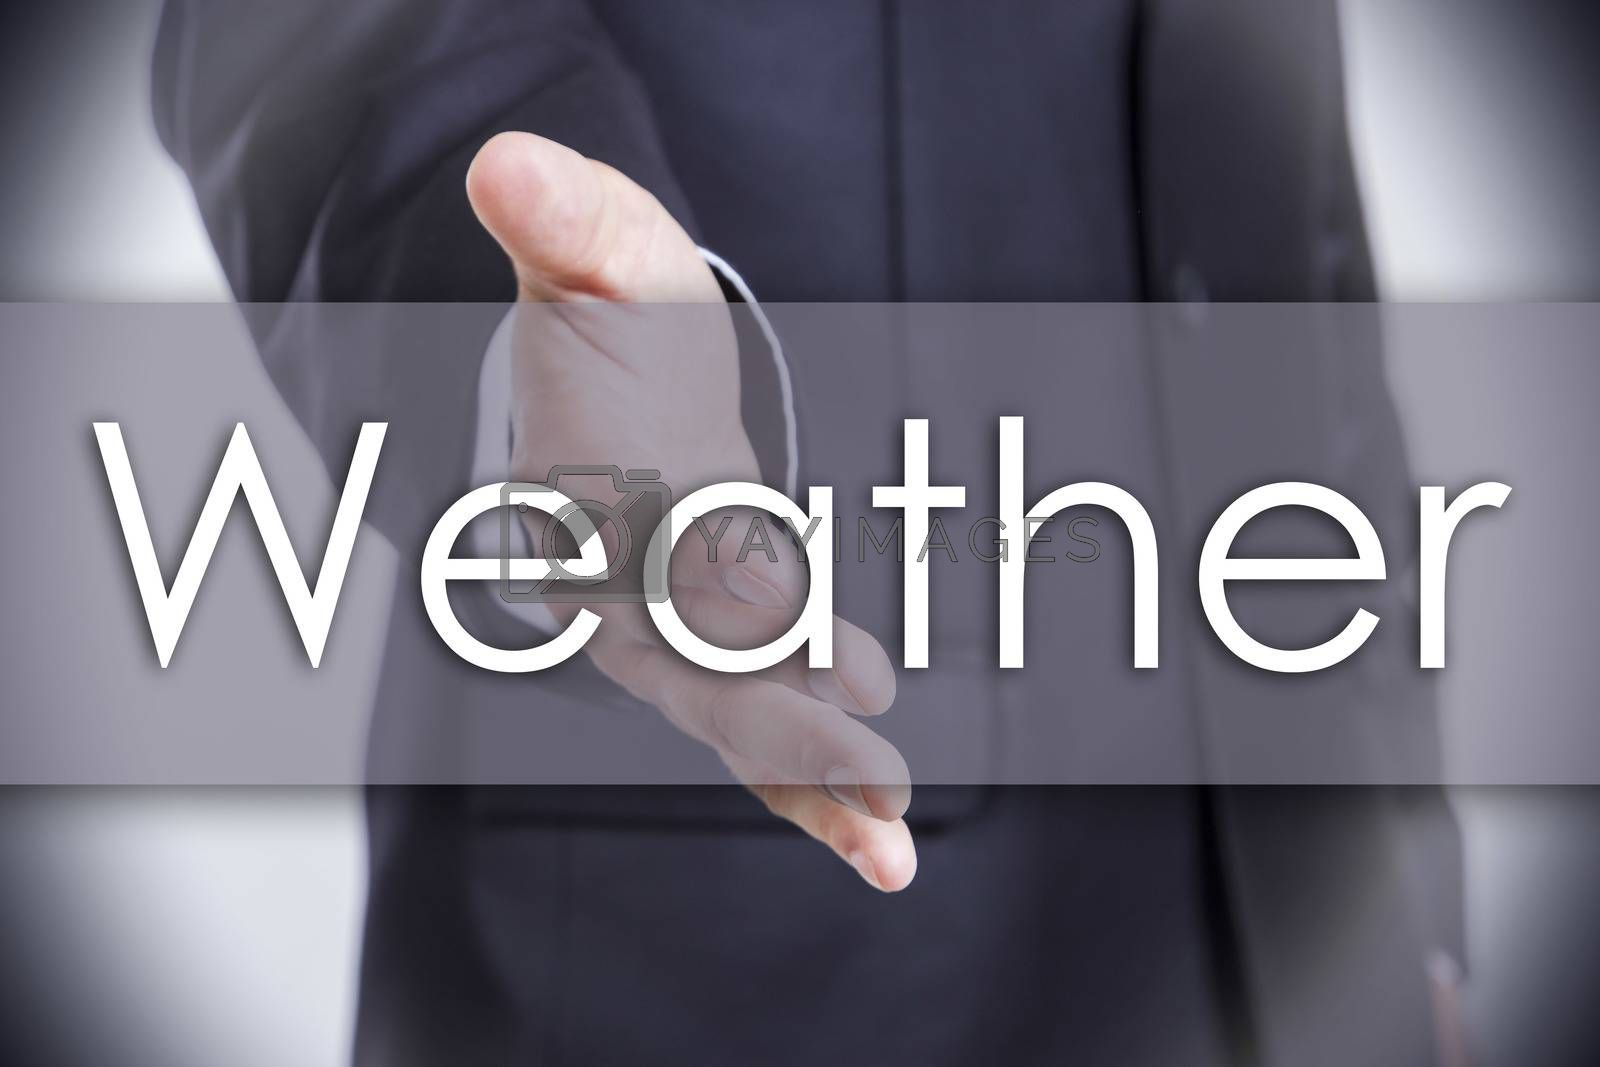 Weather - business concept with text by zsirosistvan